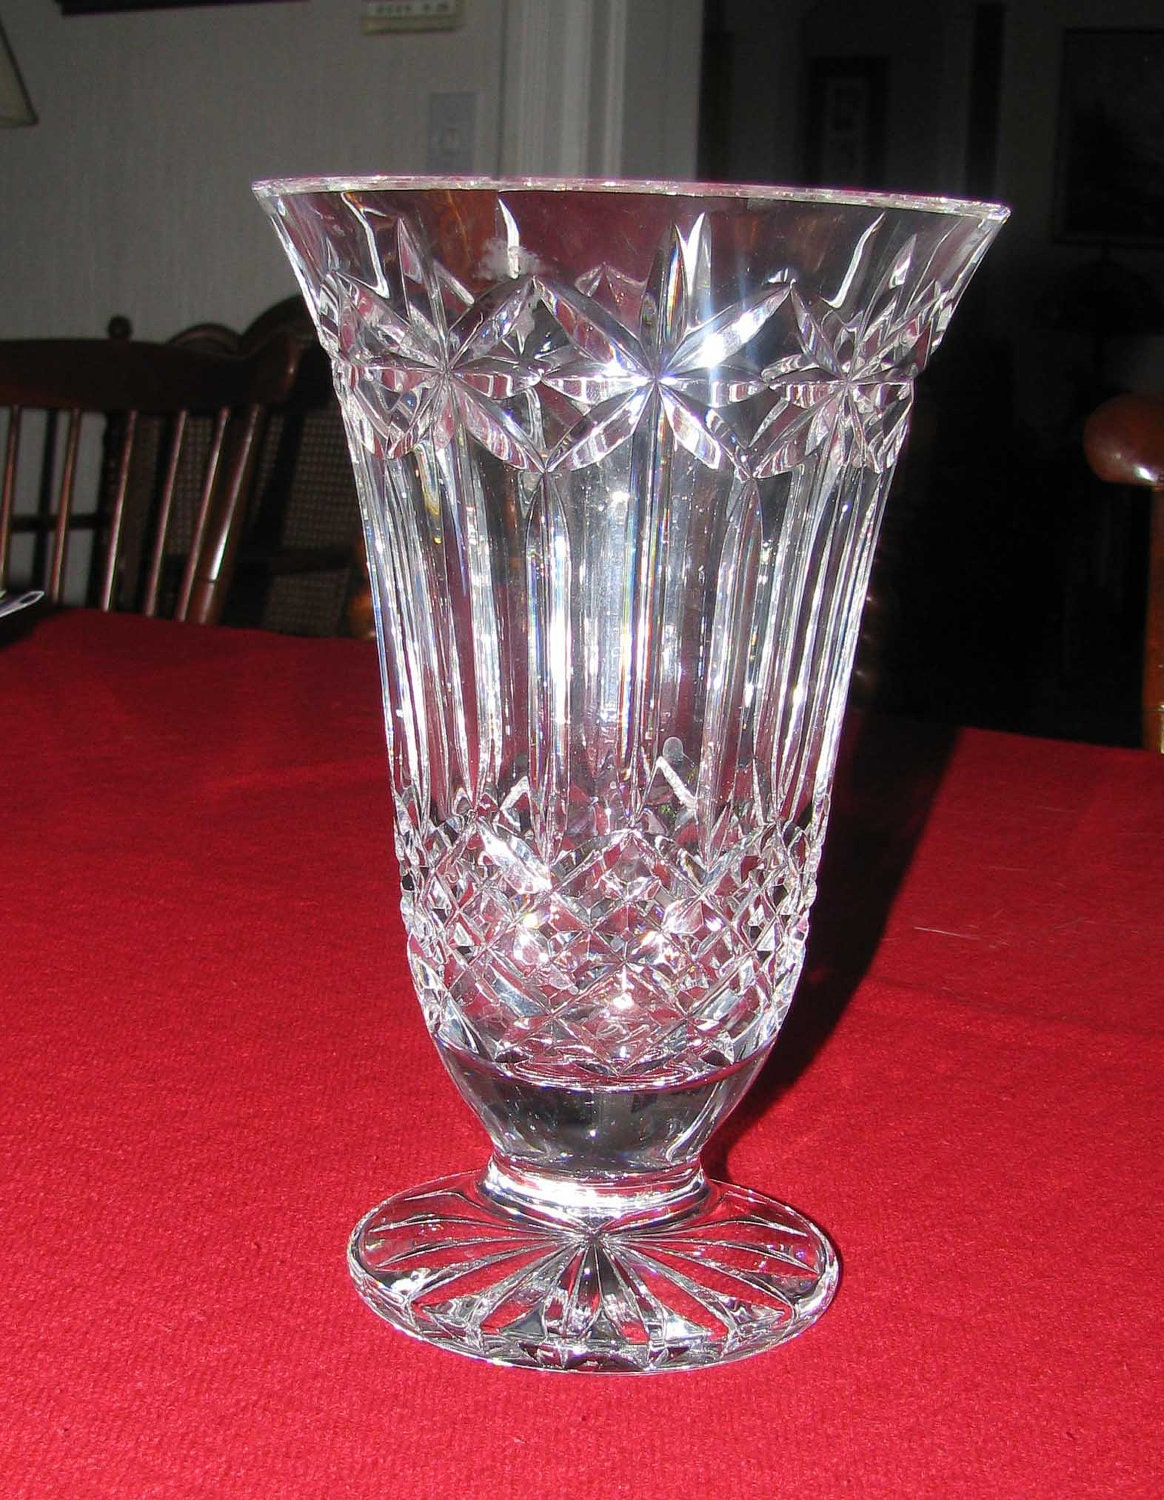 Waterford Starburst Lead Crystal Vase Reserved By Myparentsattick